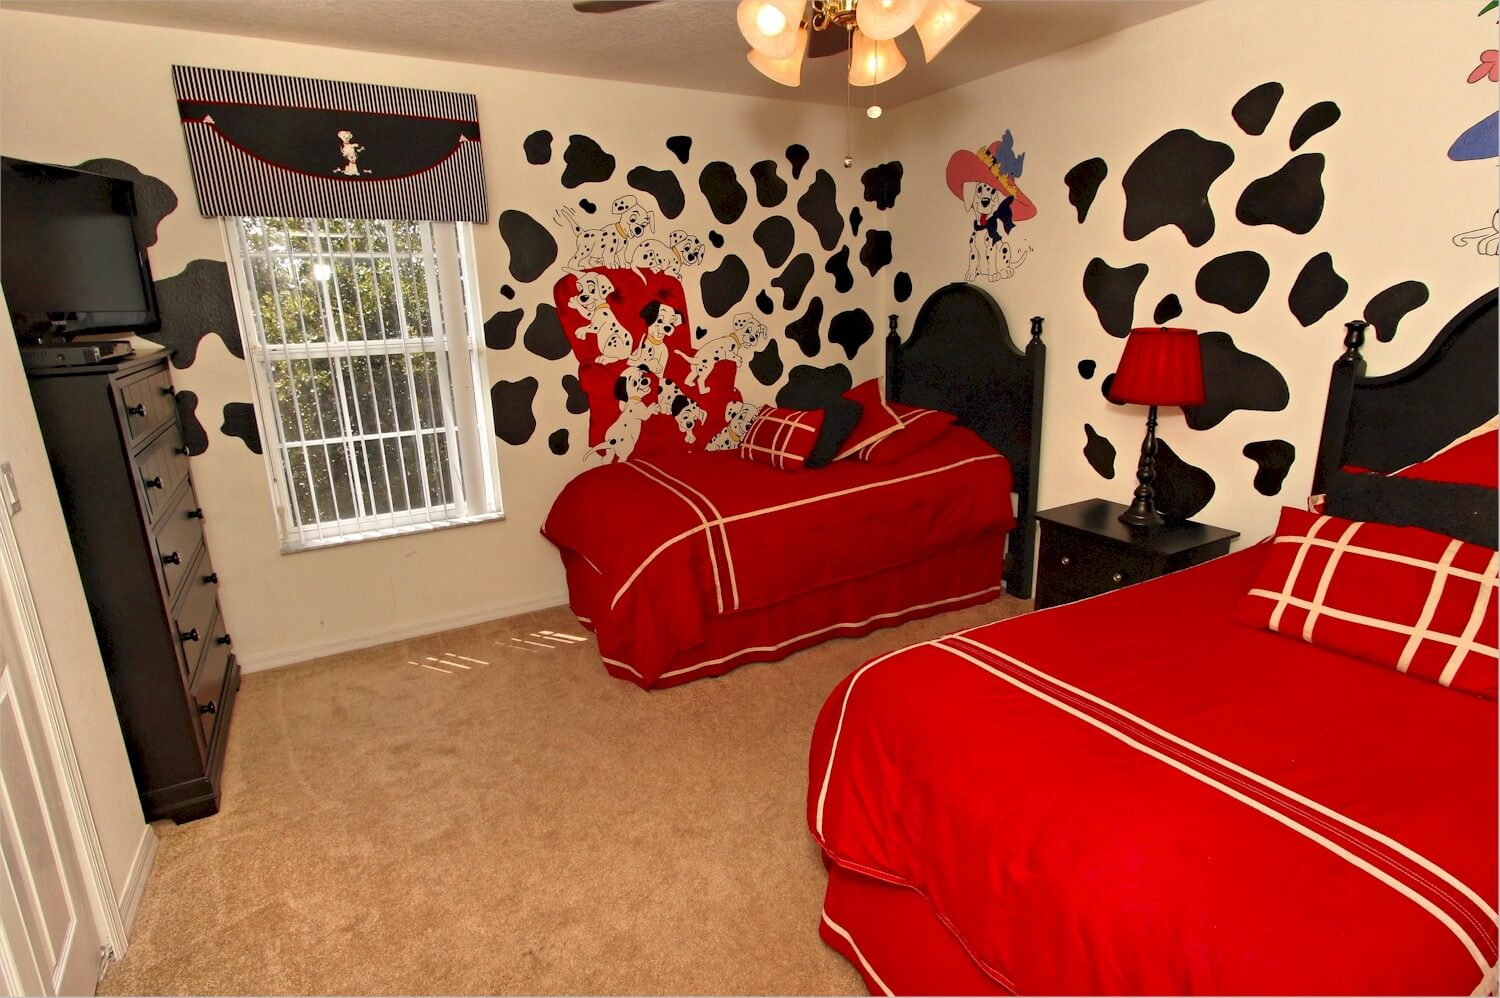 Themed bedrooms are in many vacation home rentals